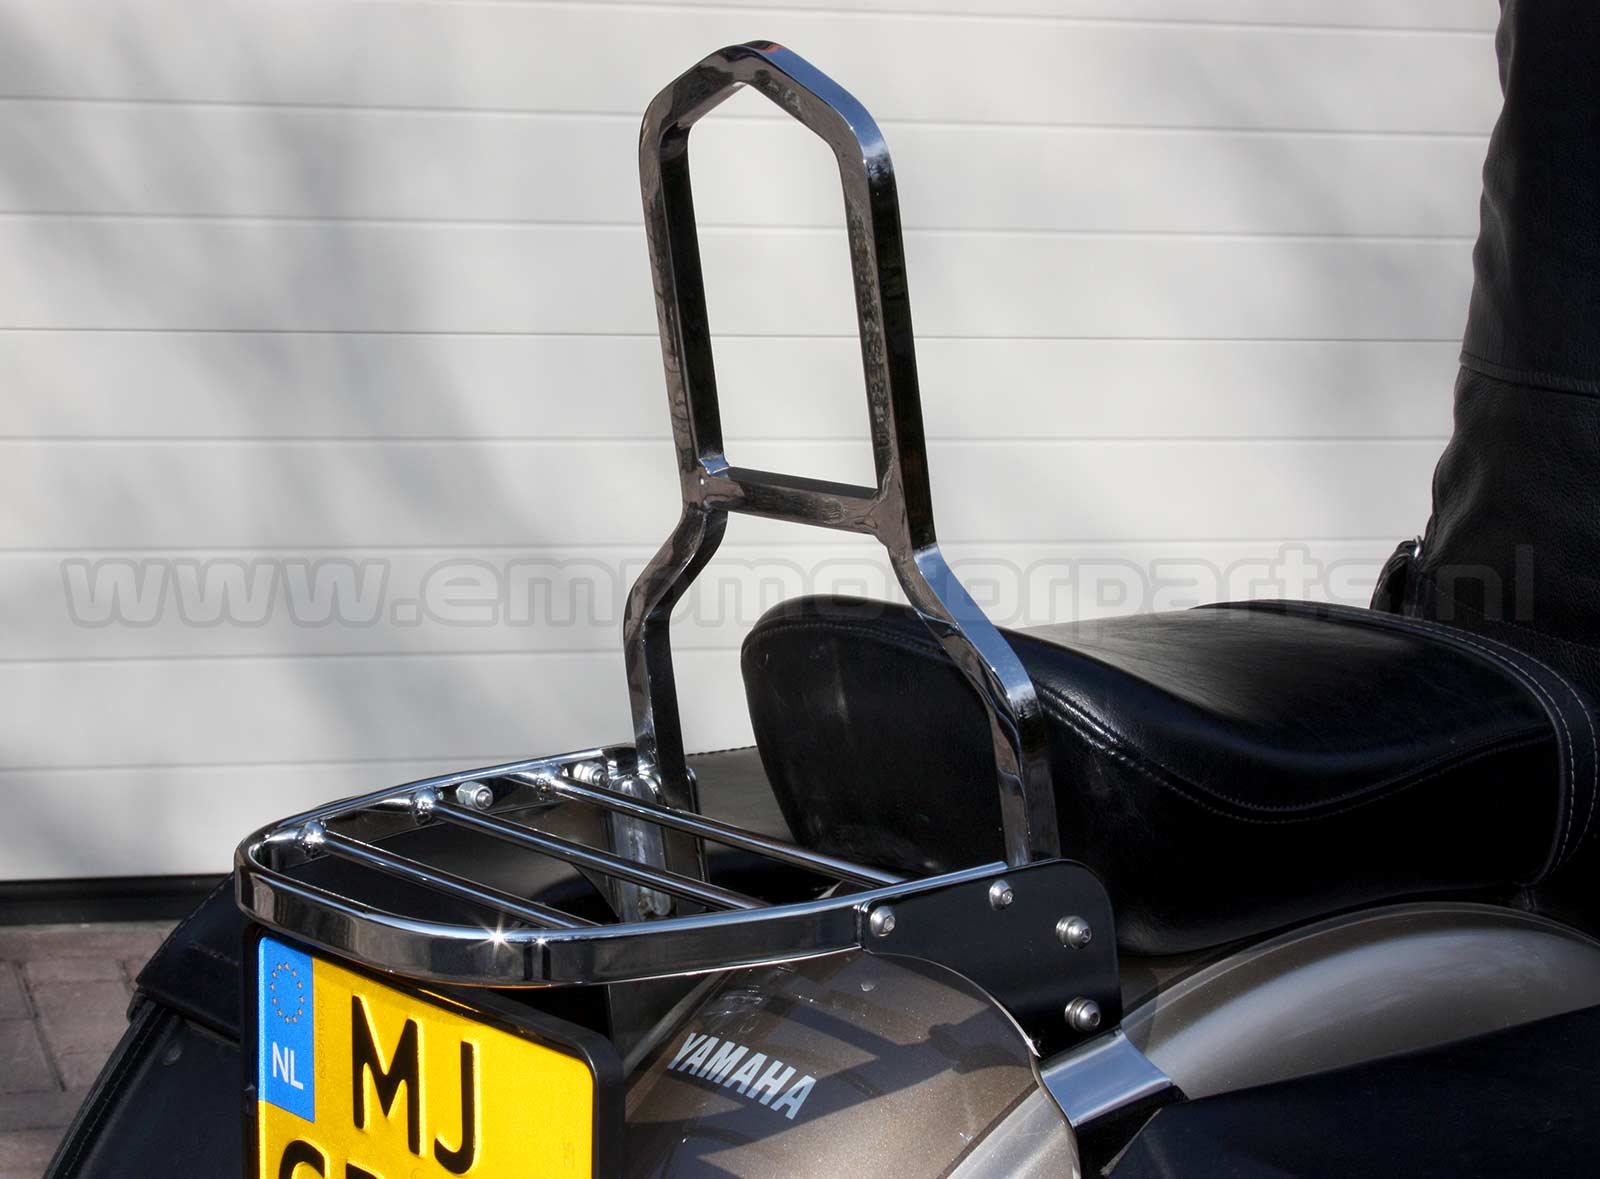 Bagagedrager universeel Luggage carrier, suitable for an model sissy bar as on the picture. (4)